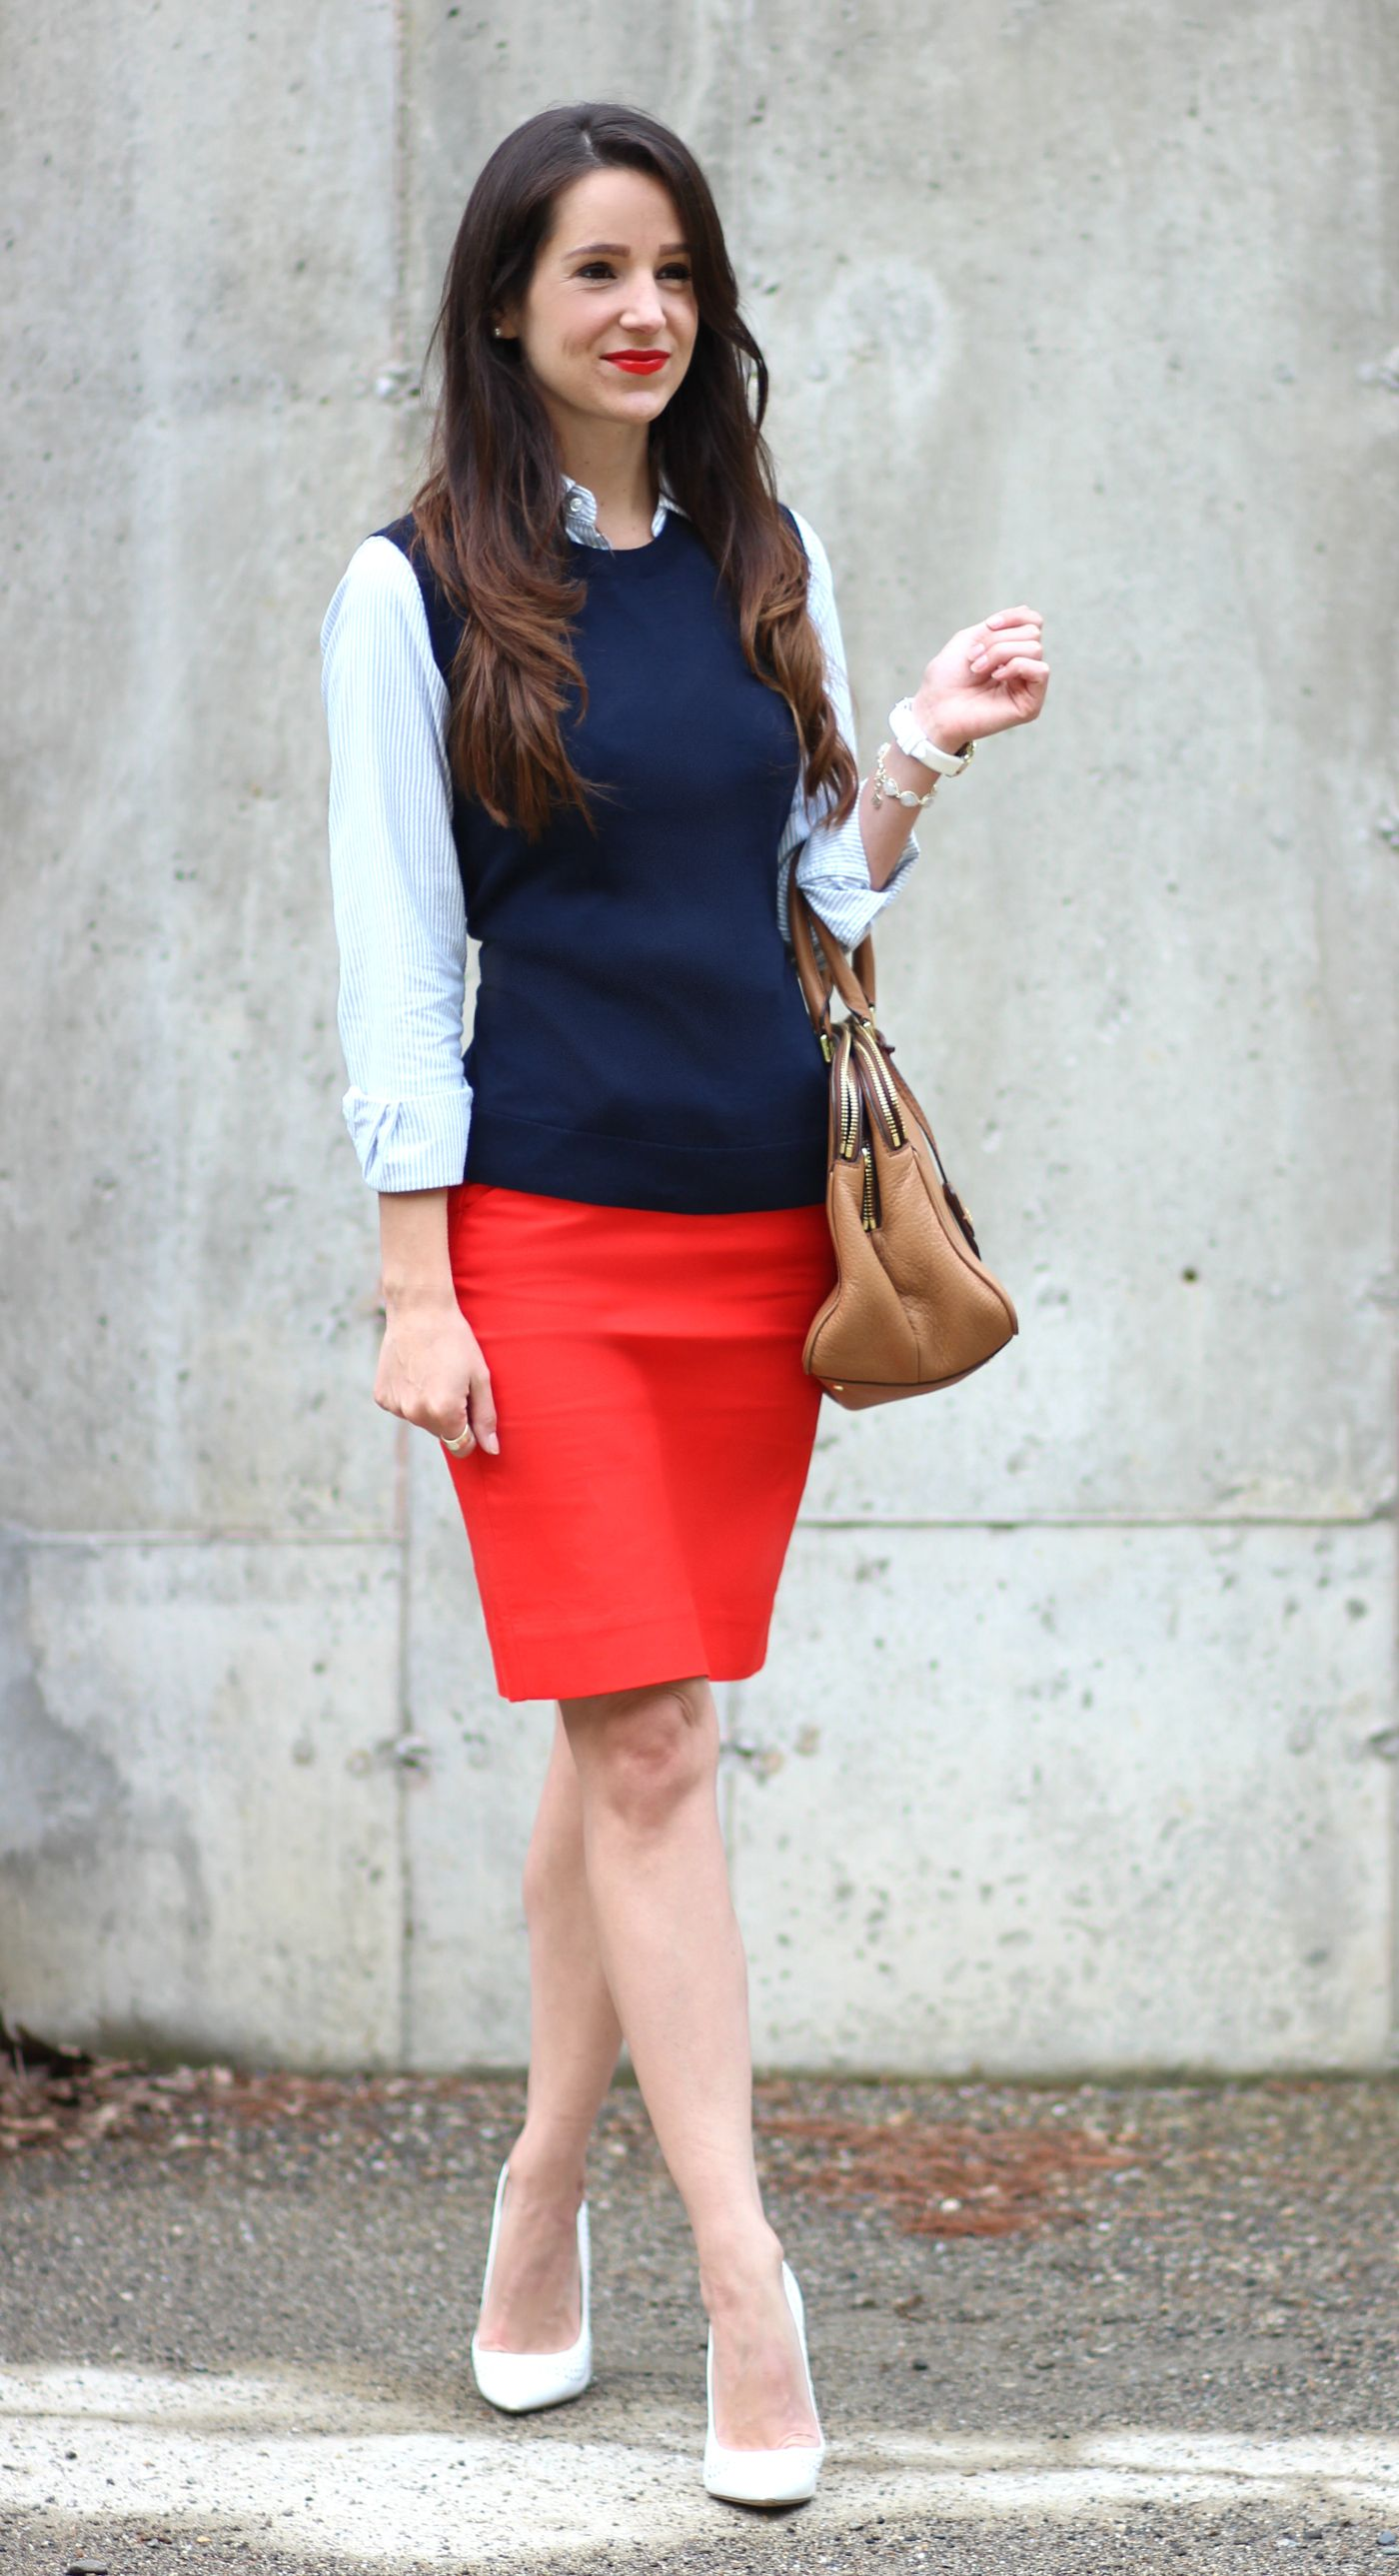 2c5f8ae0b91 Love this preppy look! Navy sweater vest with classic Ralph Lauren oxford  shirt and a red pencil skirt. A fabulous work outfit idea for anyone  looking for a ...